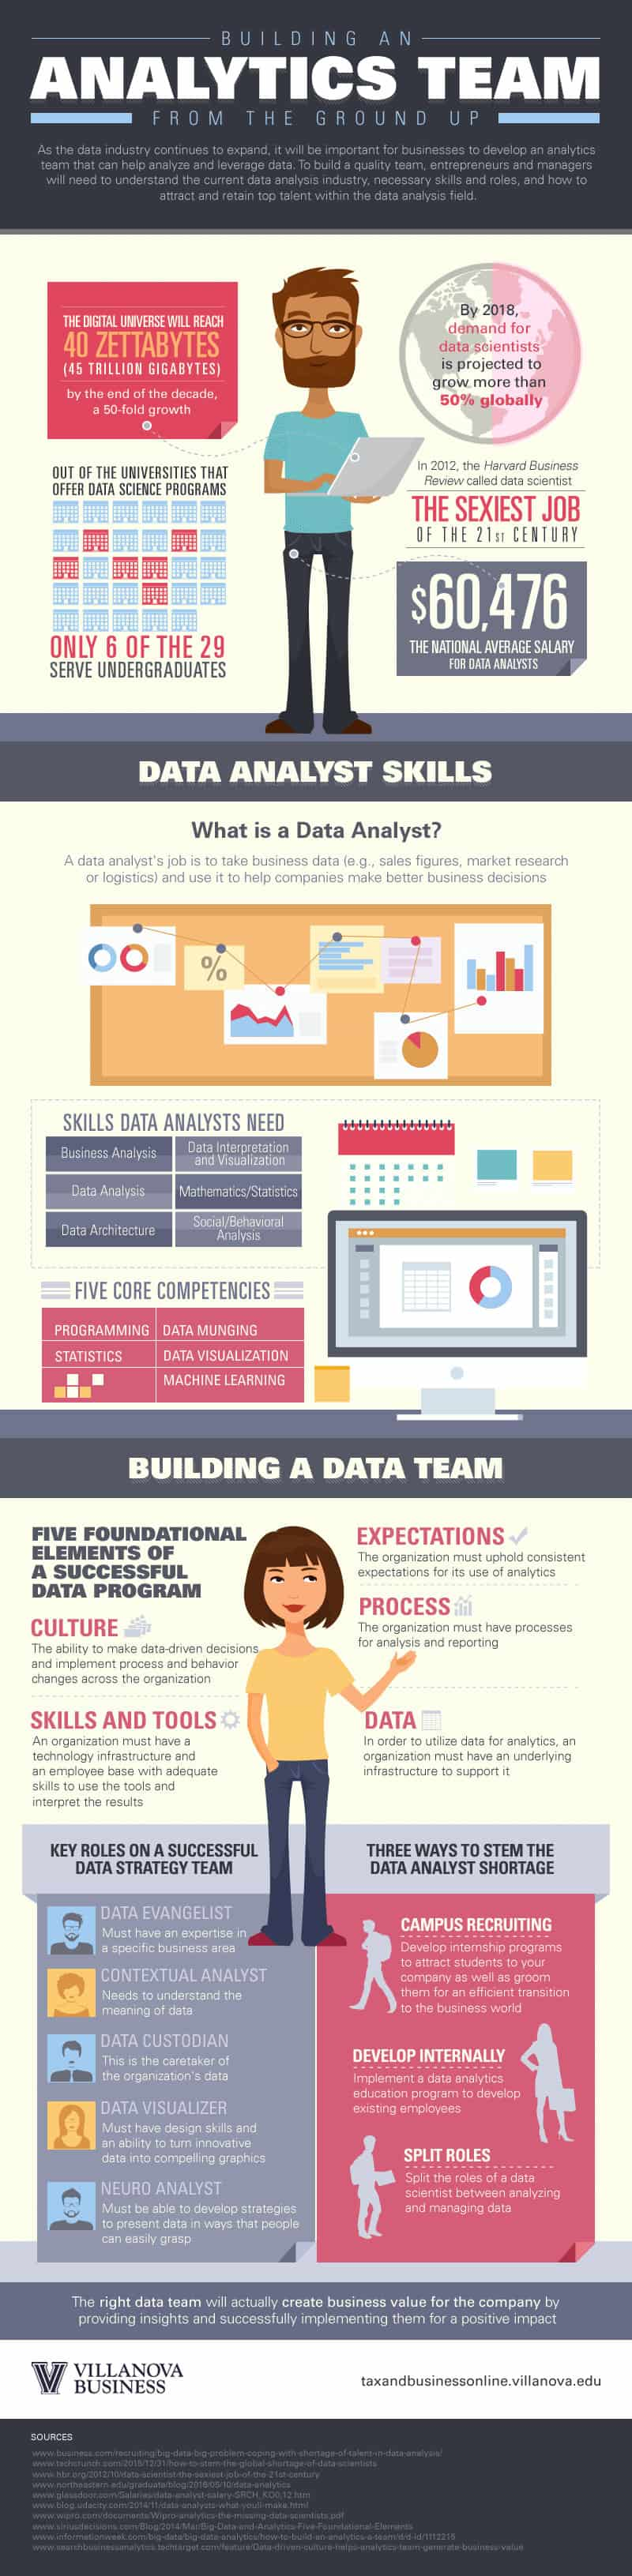 Tips for building an analytics team in an infographic